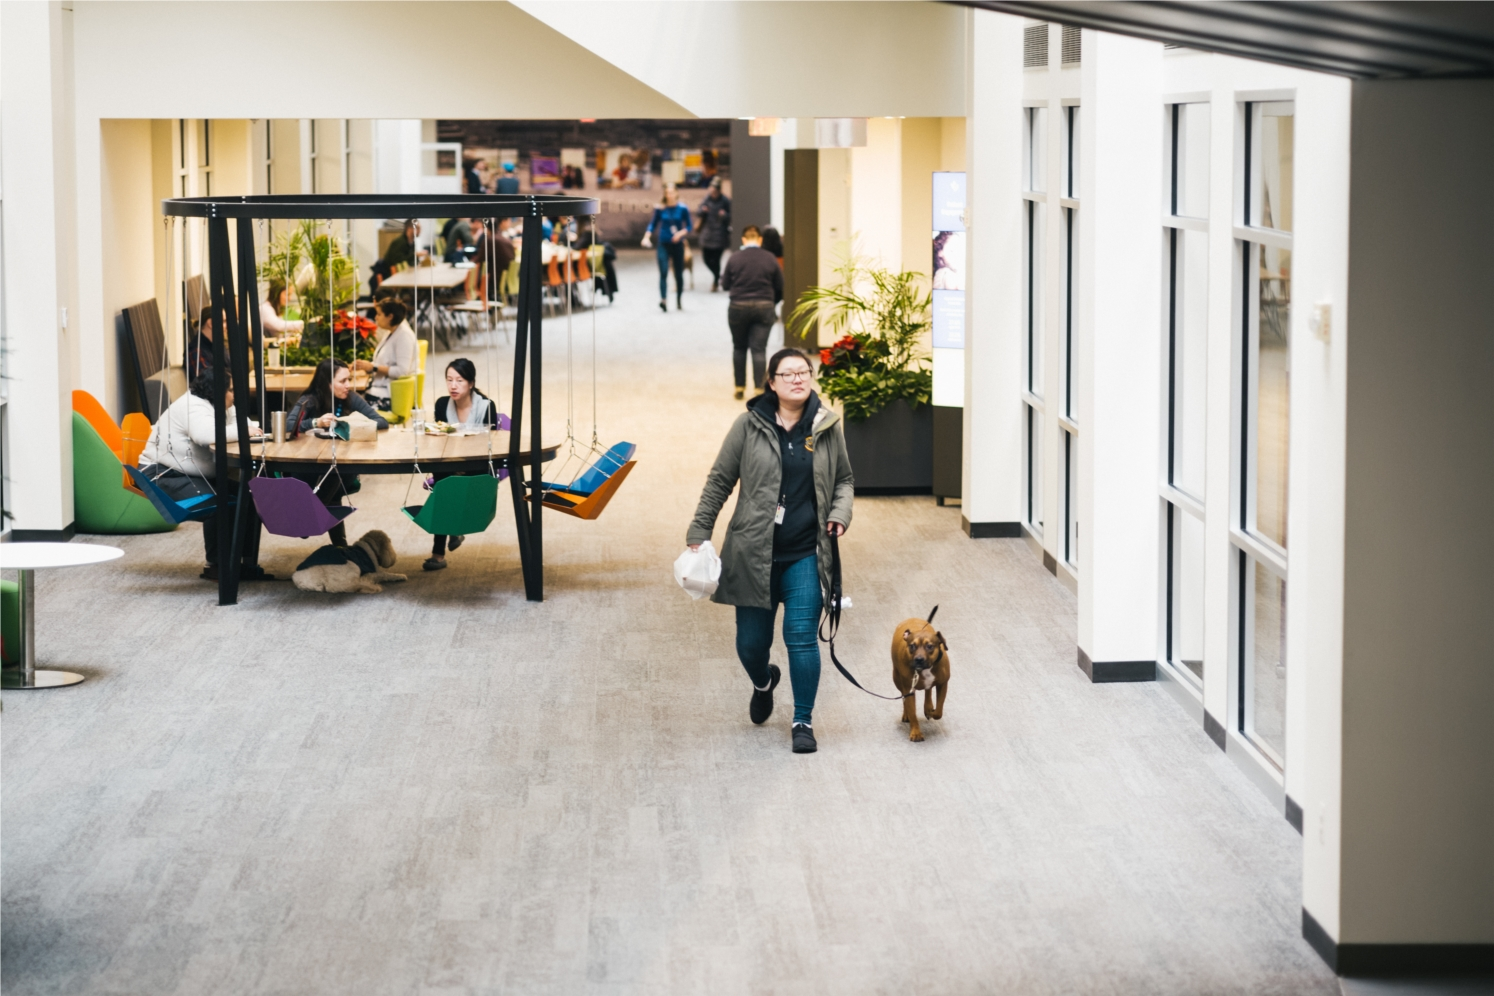 More campus than office, Watertown is a sprawling building filled with open, collaborative spaces where employees hash out projects and weekend plans.